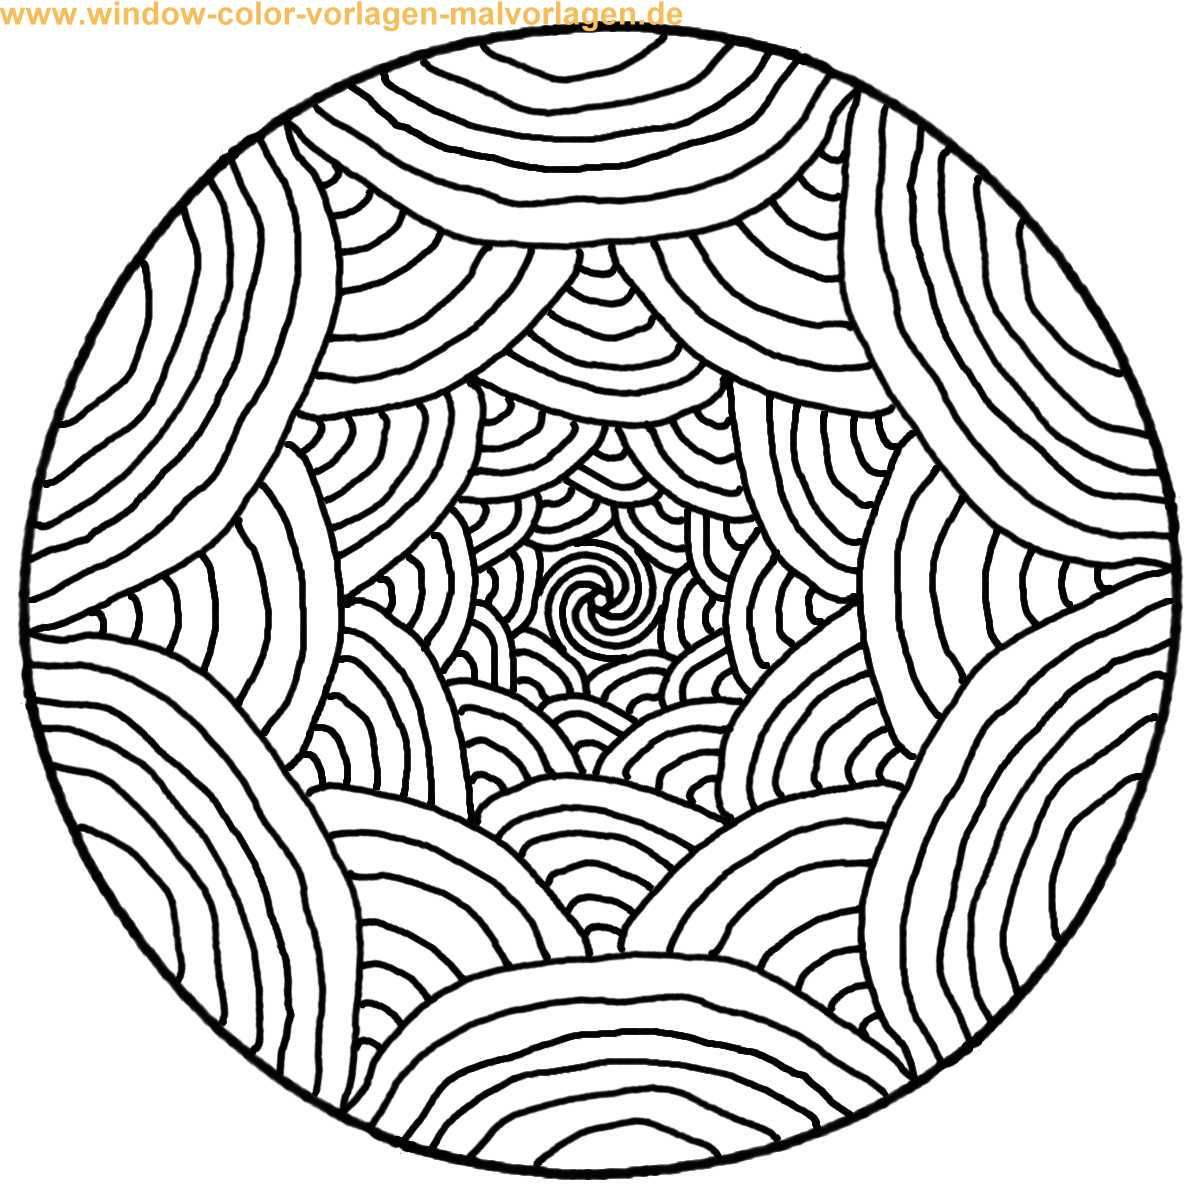 coloriage de mandala facile 10 ibukijima pinterest coloriage de mandala coloriage de et. Black Bedroom Furniture Sets. Home Design Ideas